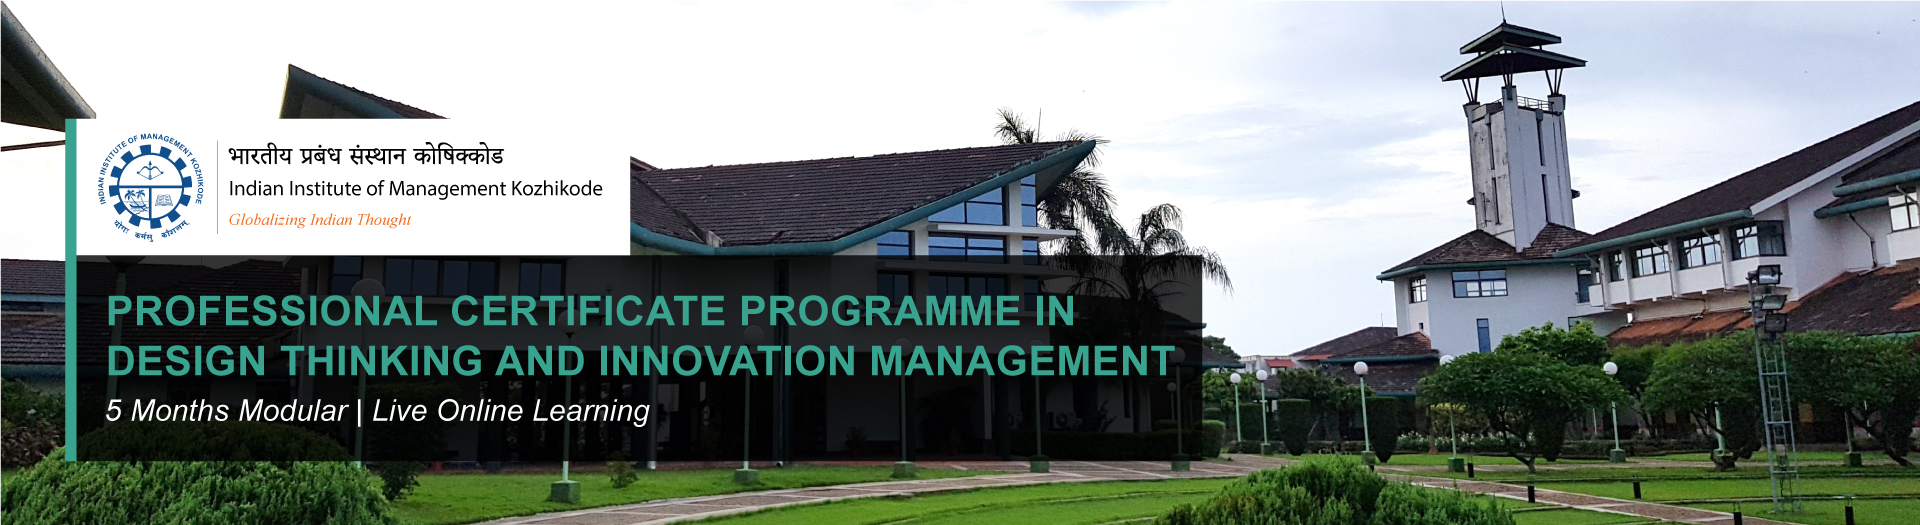 PROFESSIONAL CERTIFICATE PROGRAMME IN DESIGN THINKING AND INNOVATION MANAGEMENT